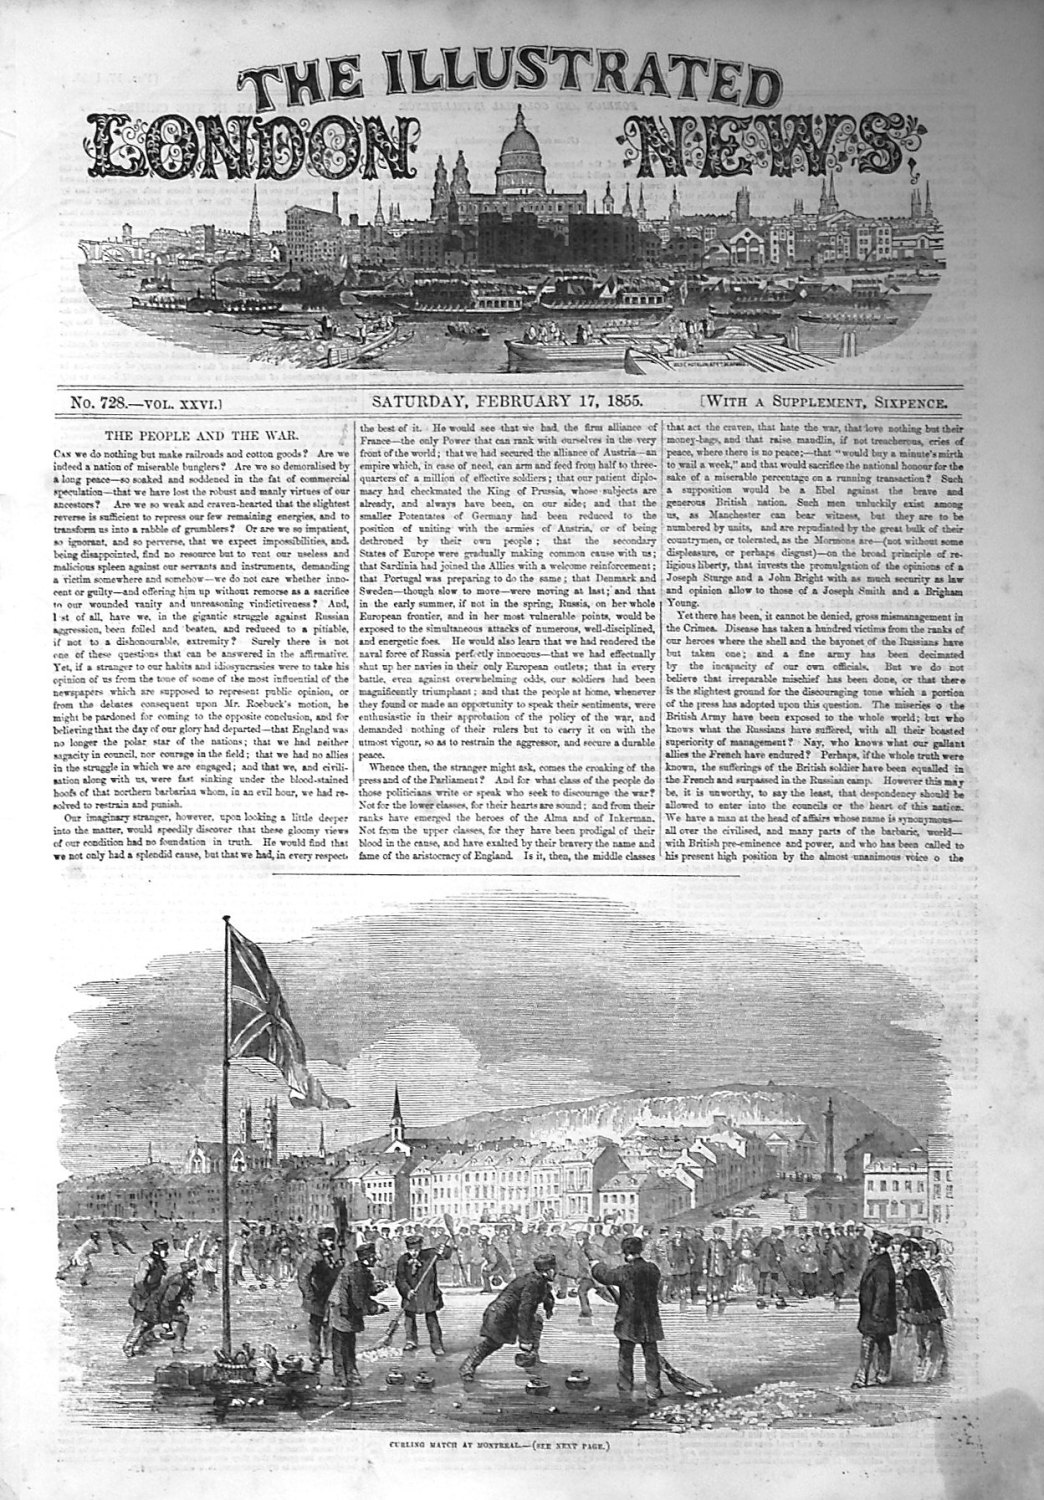 Illustrated London News February 17th 1855.